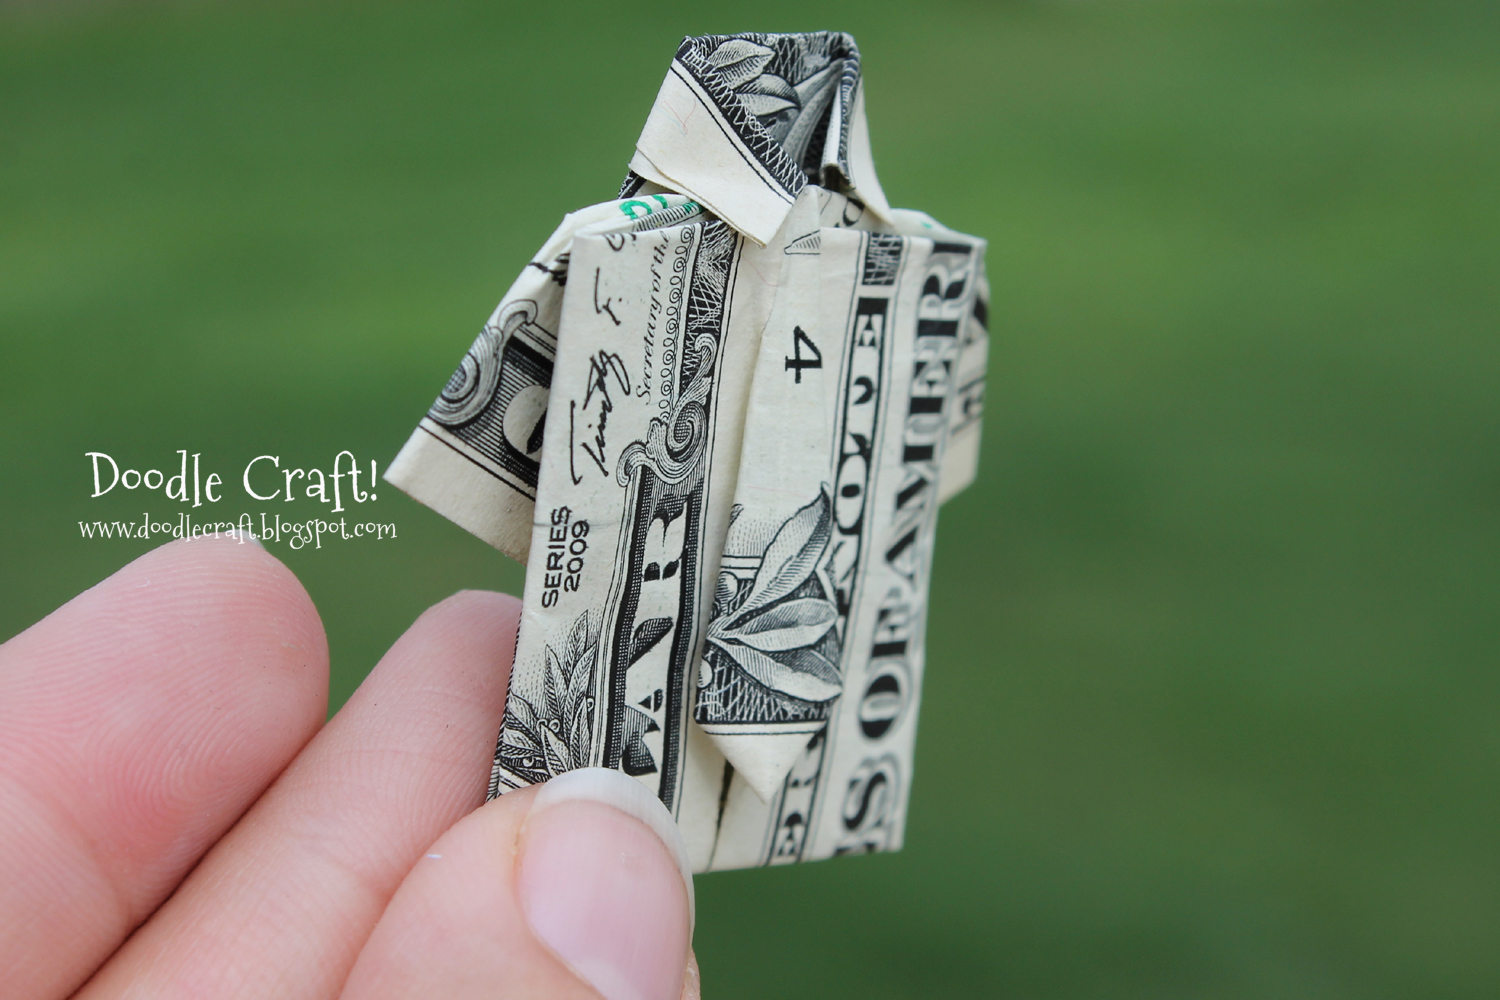 Doodlecraft: Origami Money folding: Shirt and Tie! - photo#21